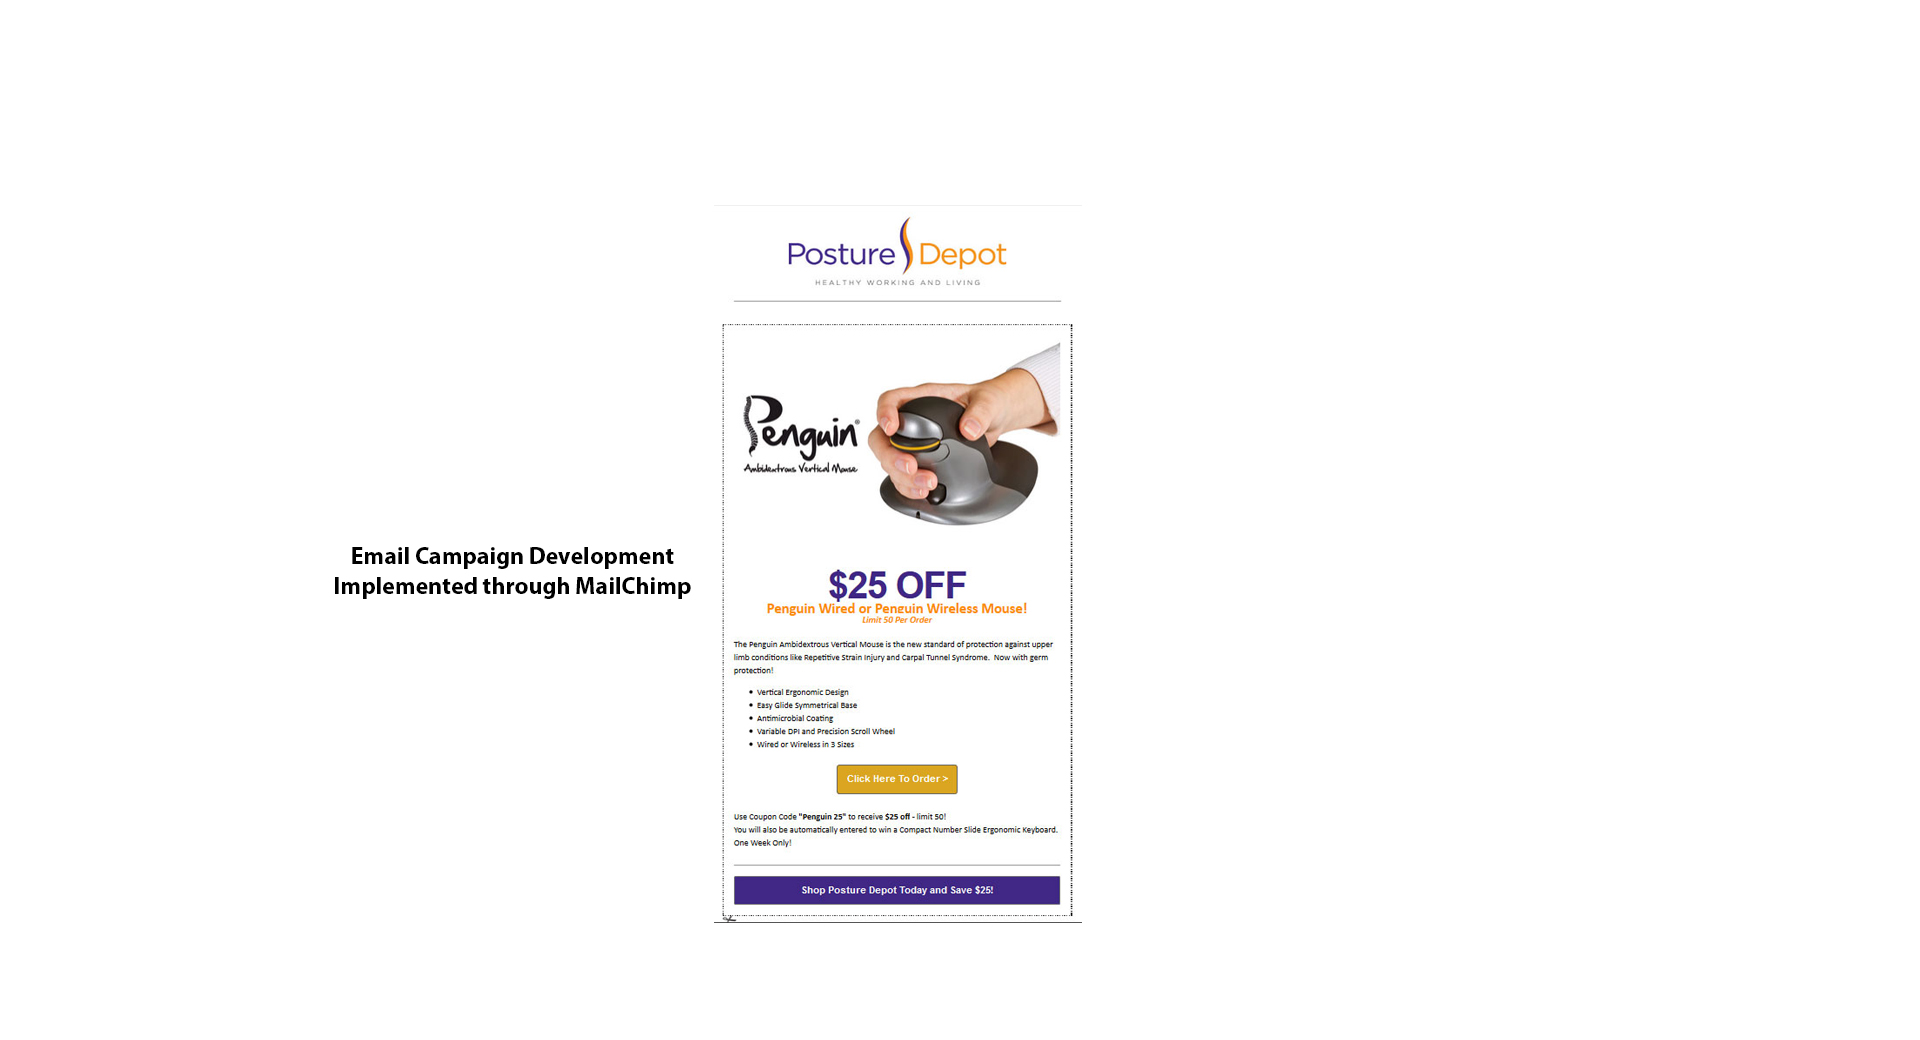 Email Marketing Campaign for Posture Depot